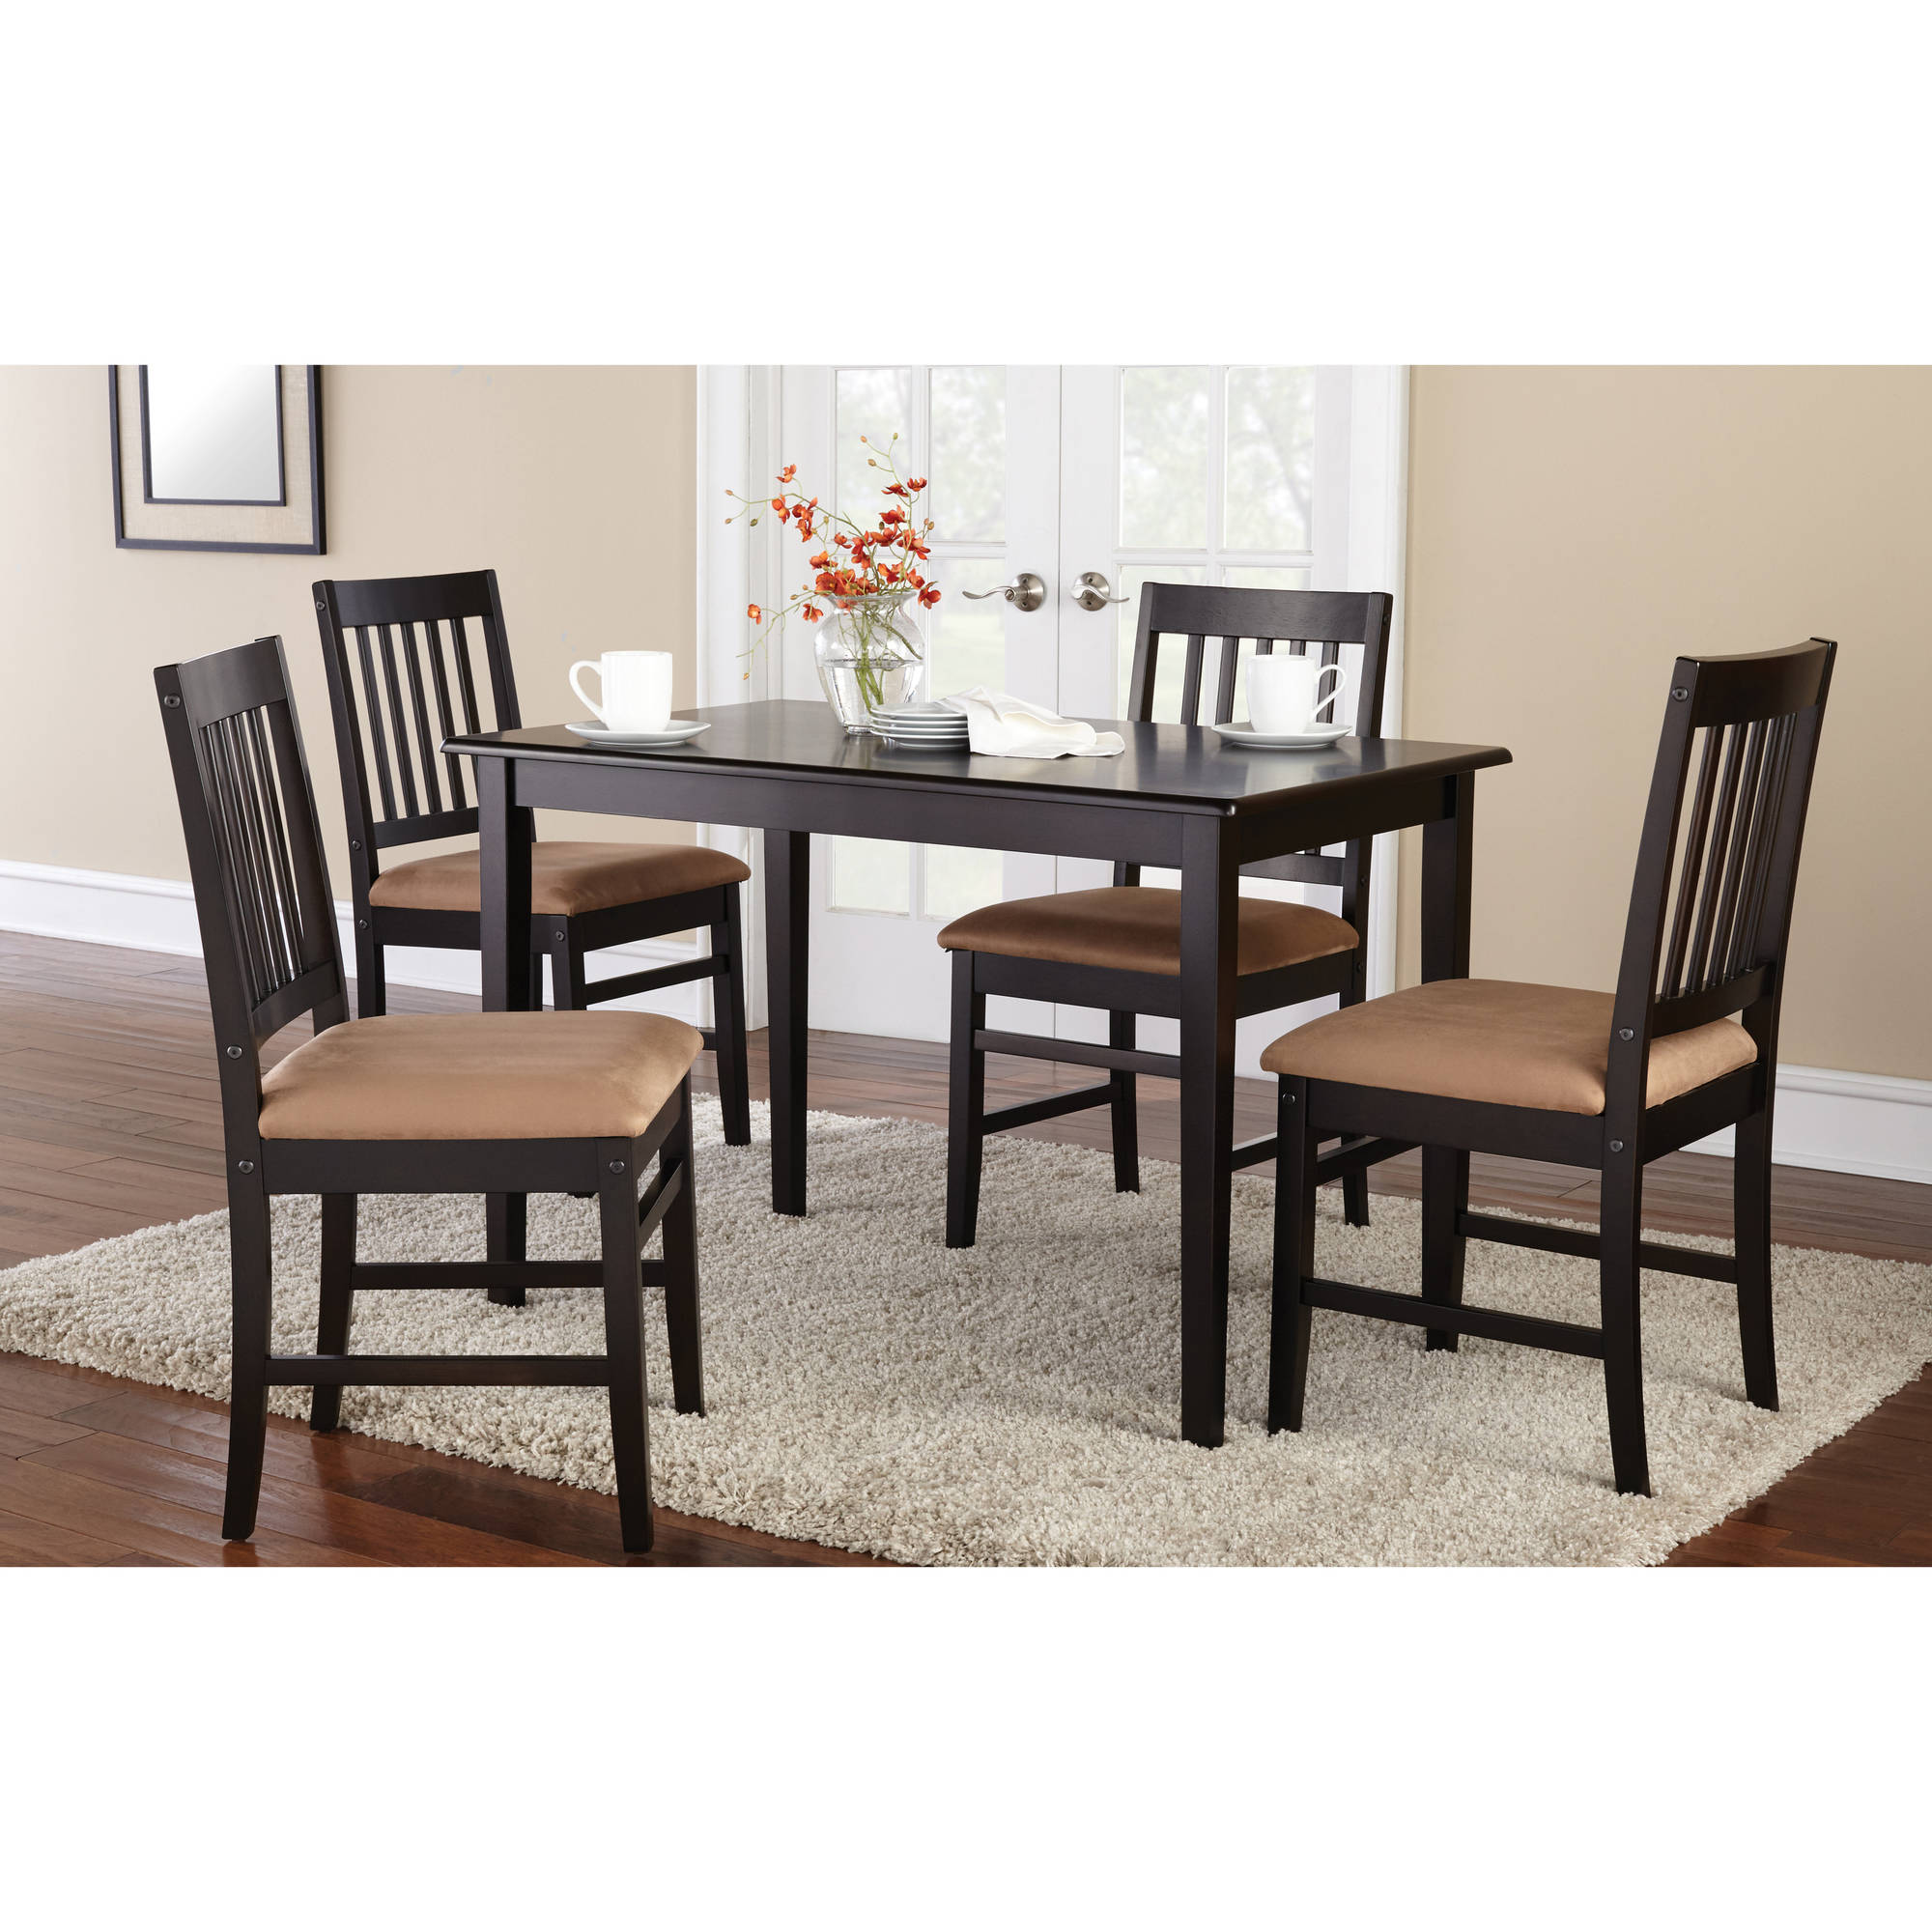 Mainstays 5 Piece Dining Set With Rich Espresso Finish